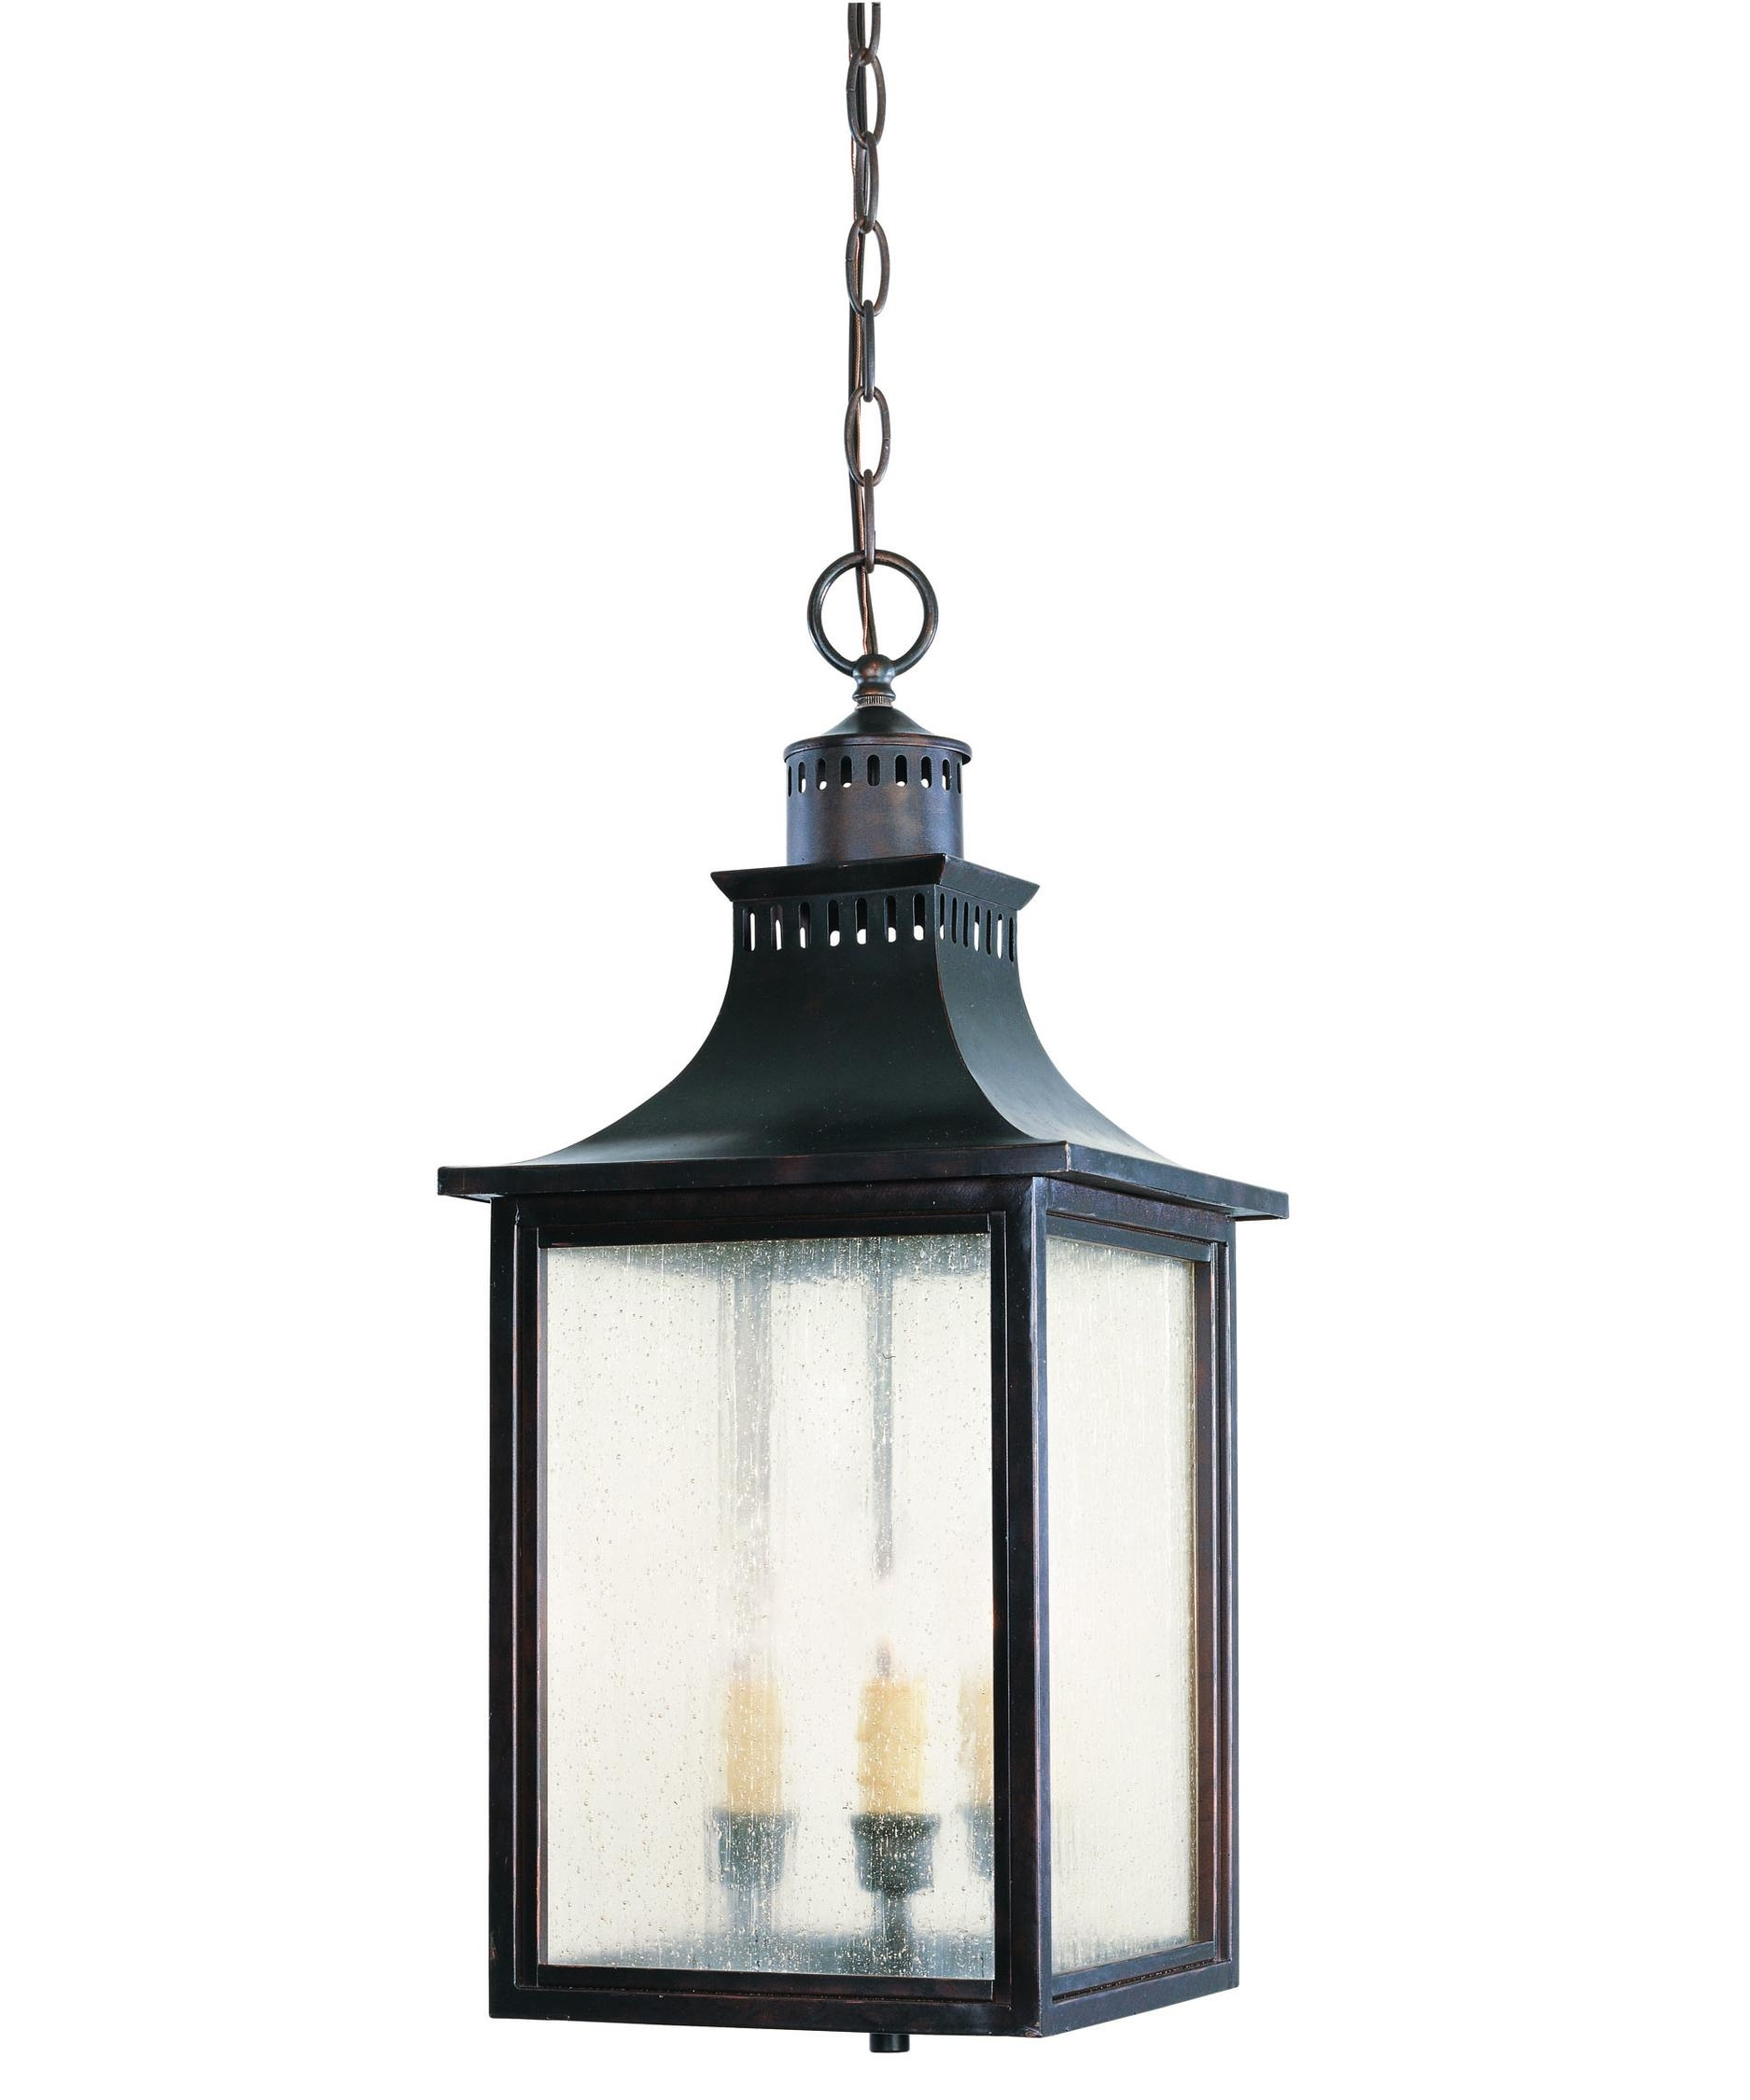 Outdoor Lighting Hanging Lanterns - Outdoor Lighting Ideas intended for Outdoor Porch Lanterns (Image 10 of 20)